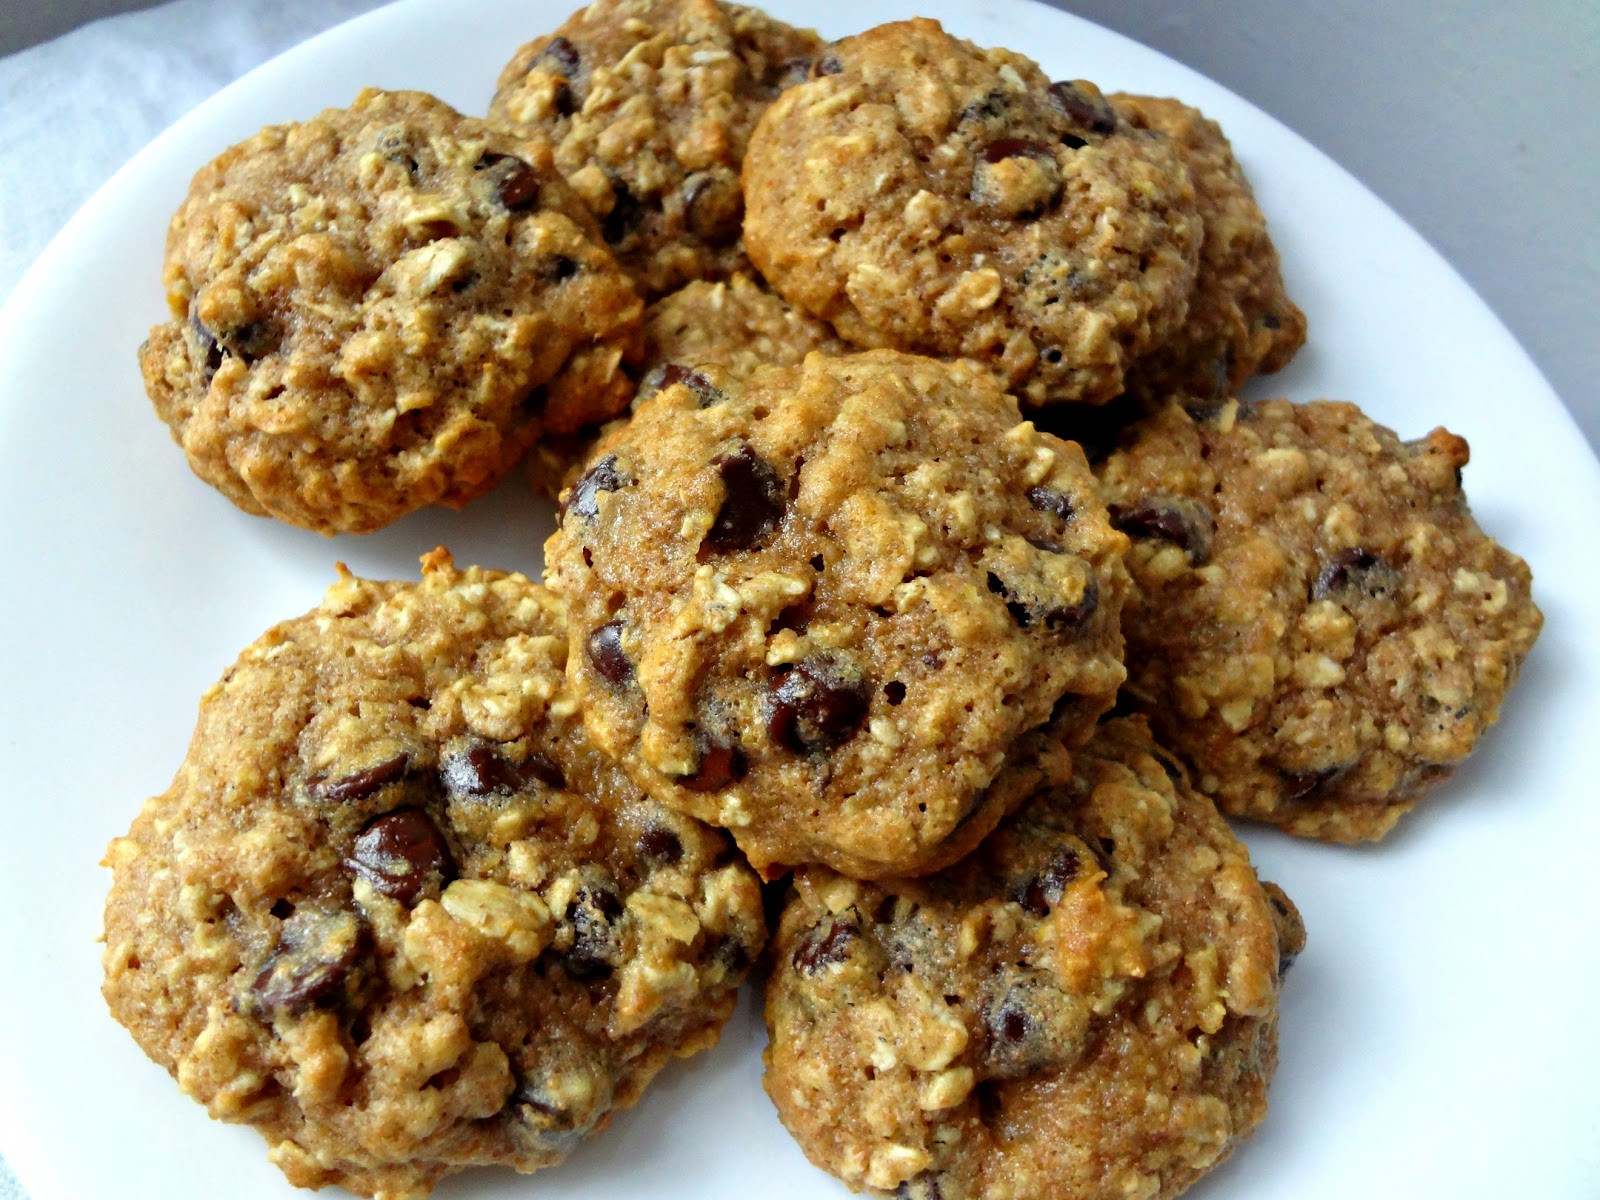 Choc Chip Oatmeal Cookies Healthy  The Cooking Actress Healthy Oatmeal Chocolate Chip Cookies